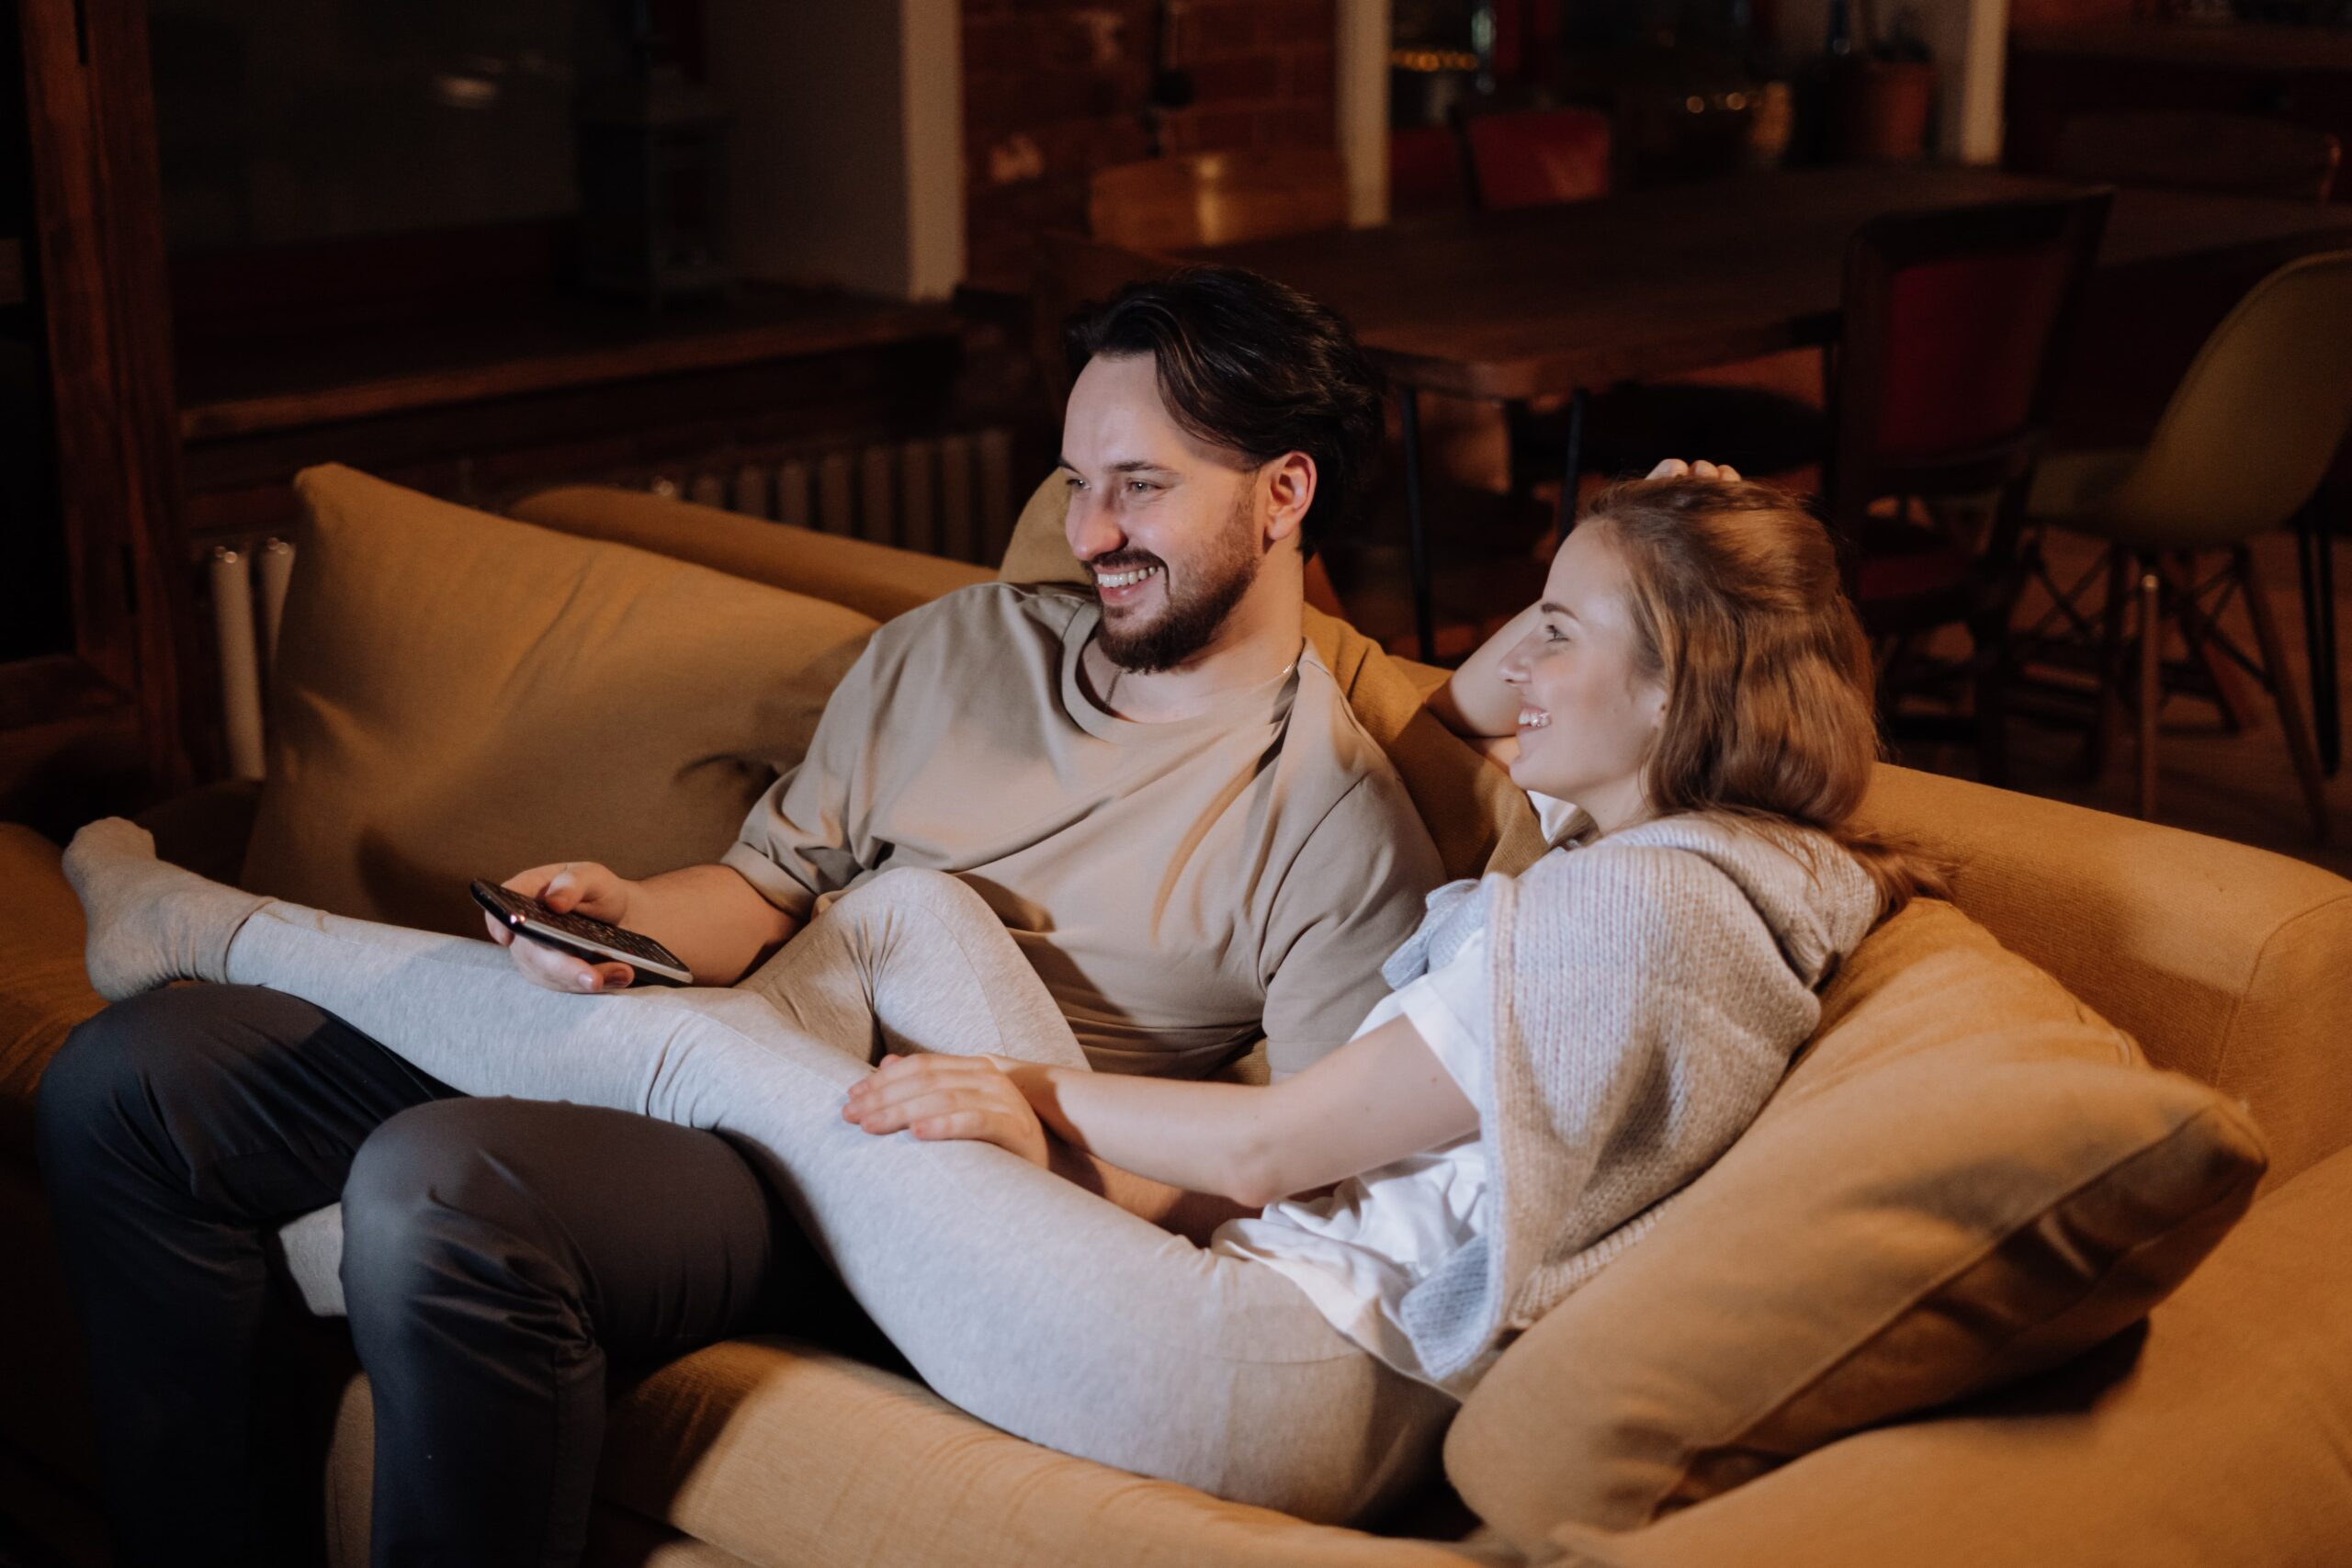 What Your Sofa Position Could Say About Your Relationship